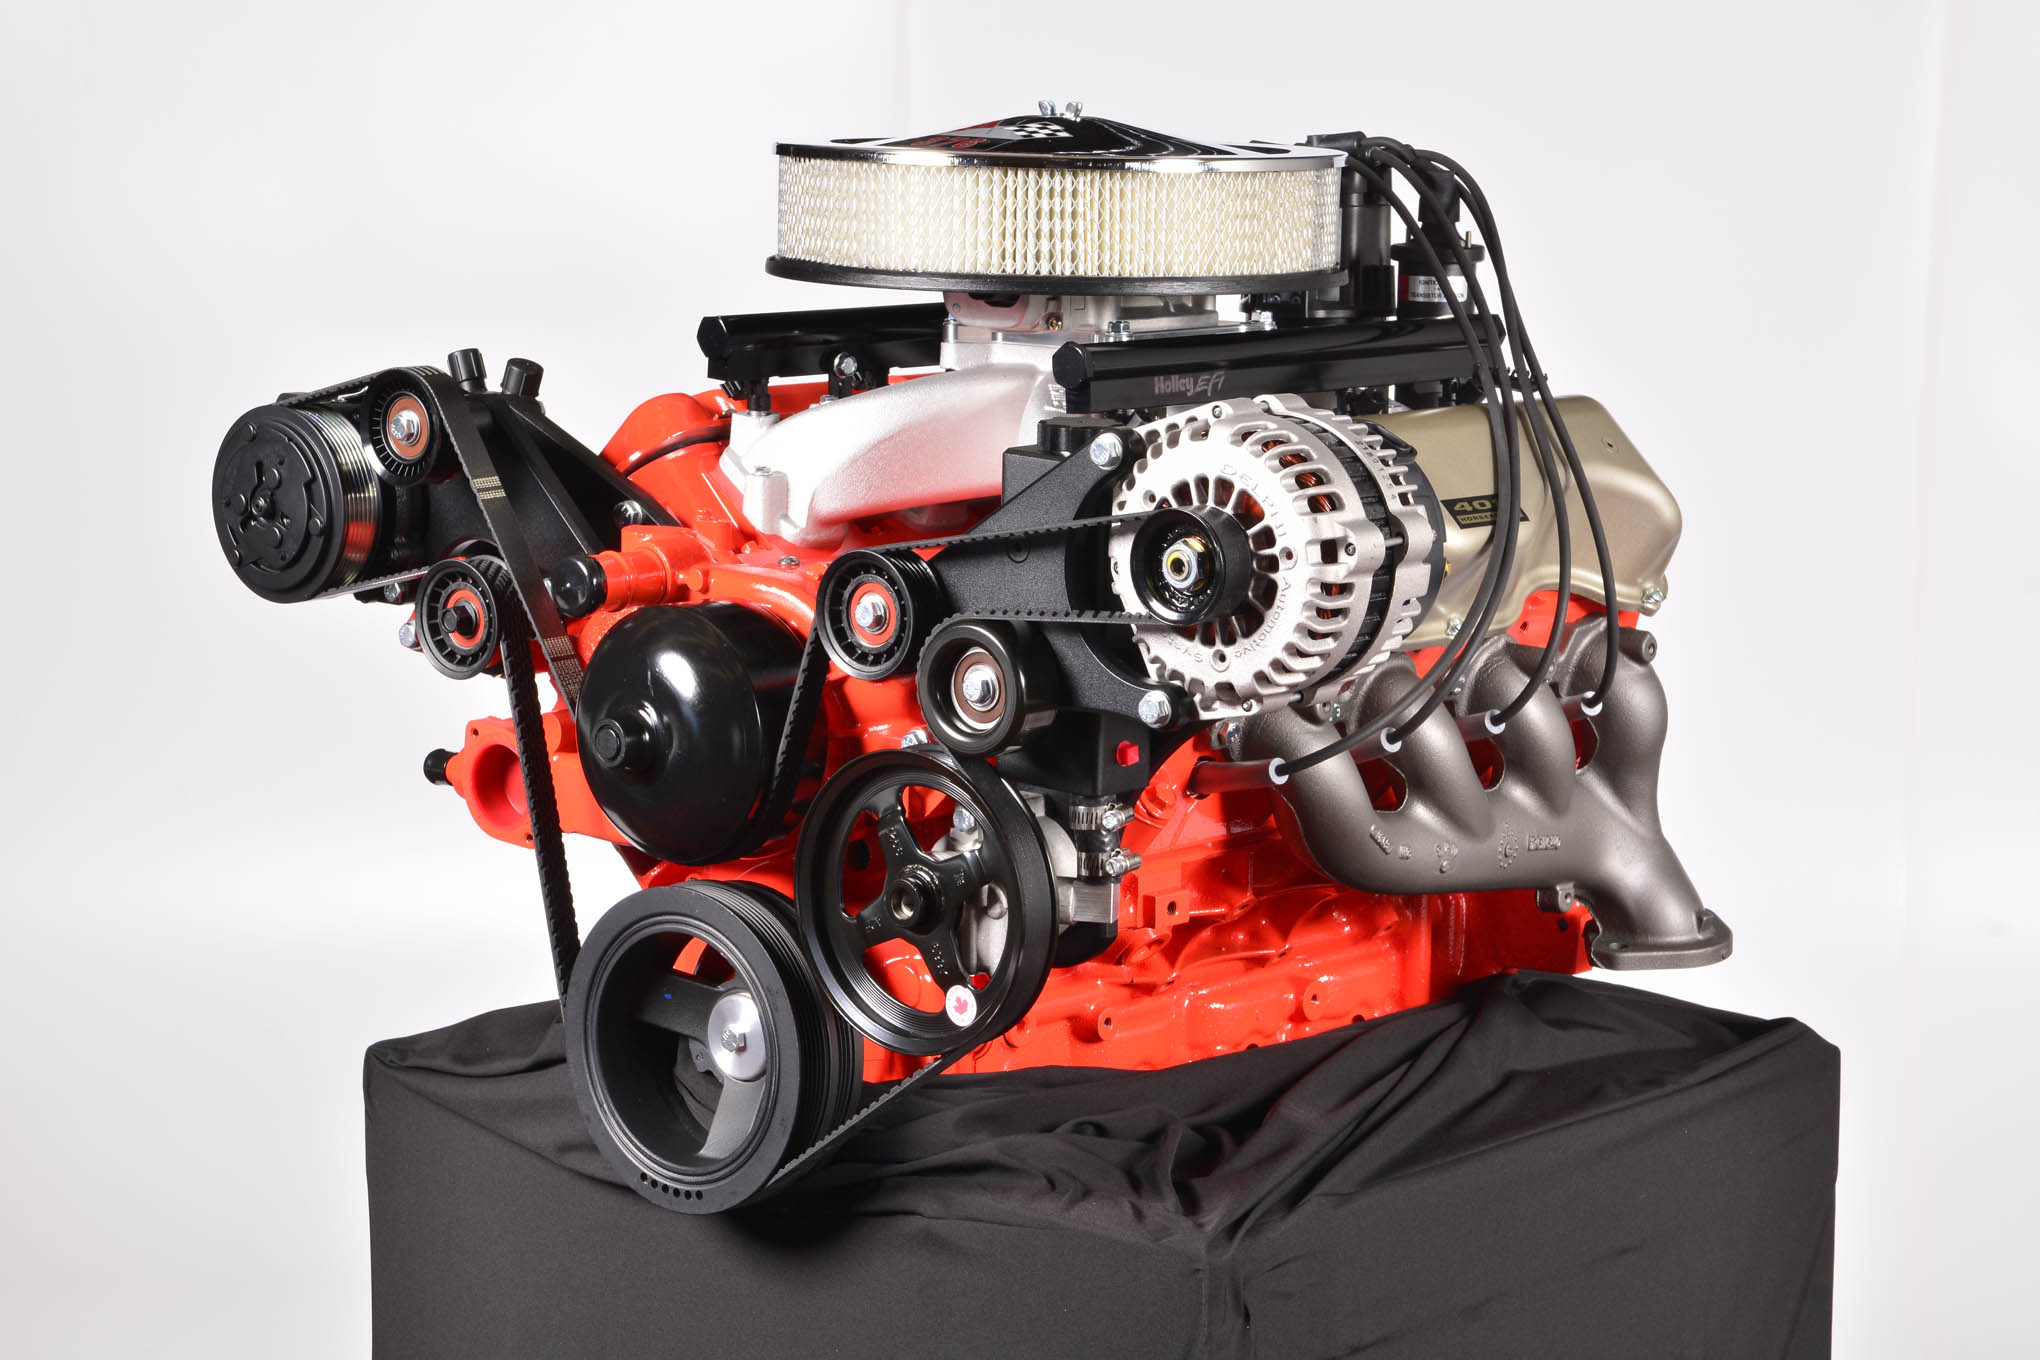 Truckin's Top 25 SEMA Hottest Products for 2020